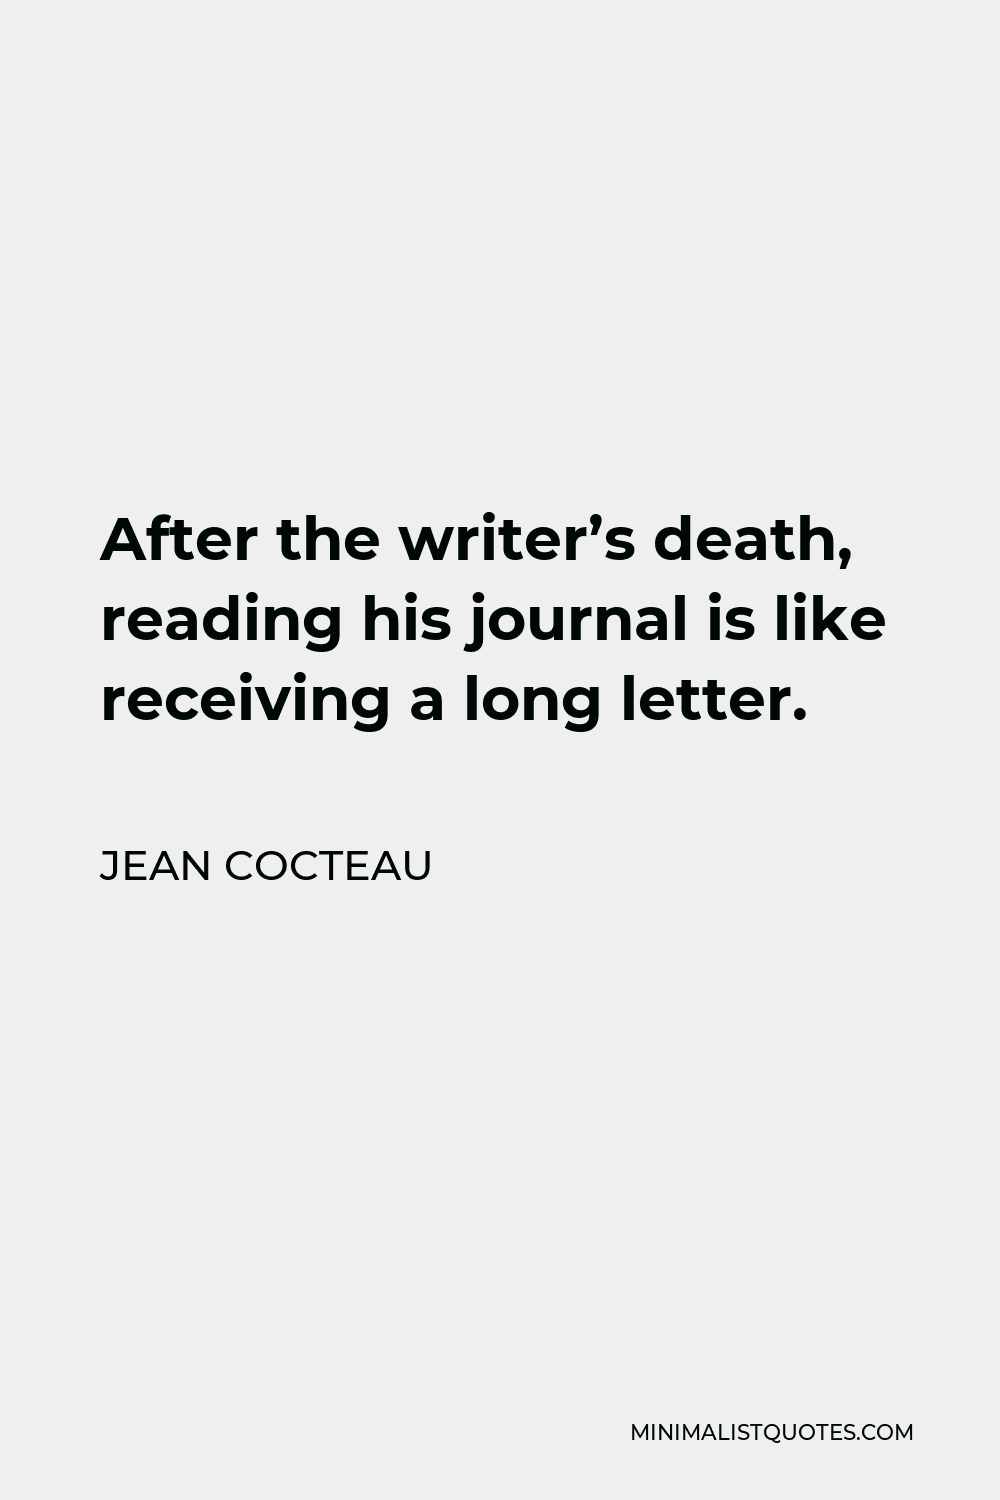 Jean Cocteau Quote - After the writer's death, reading his journal is like receiving a long letter.